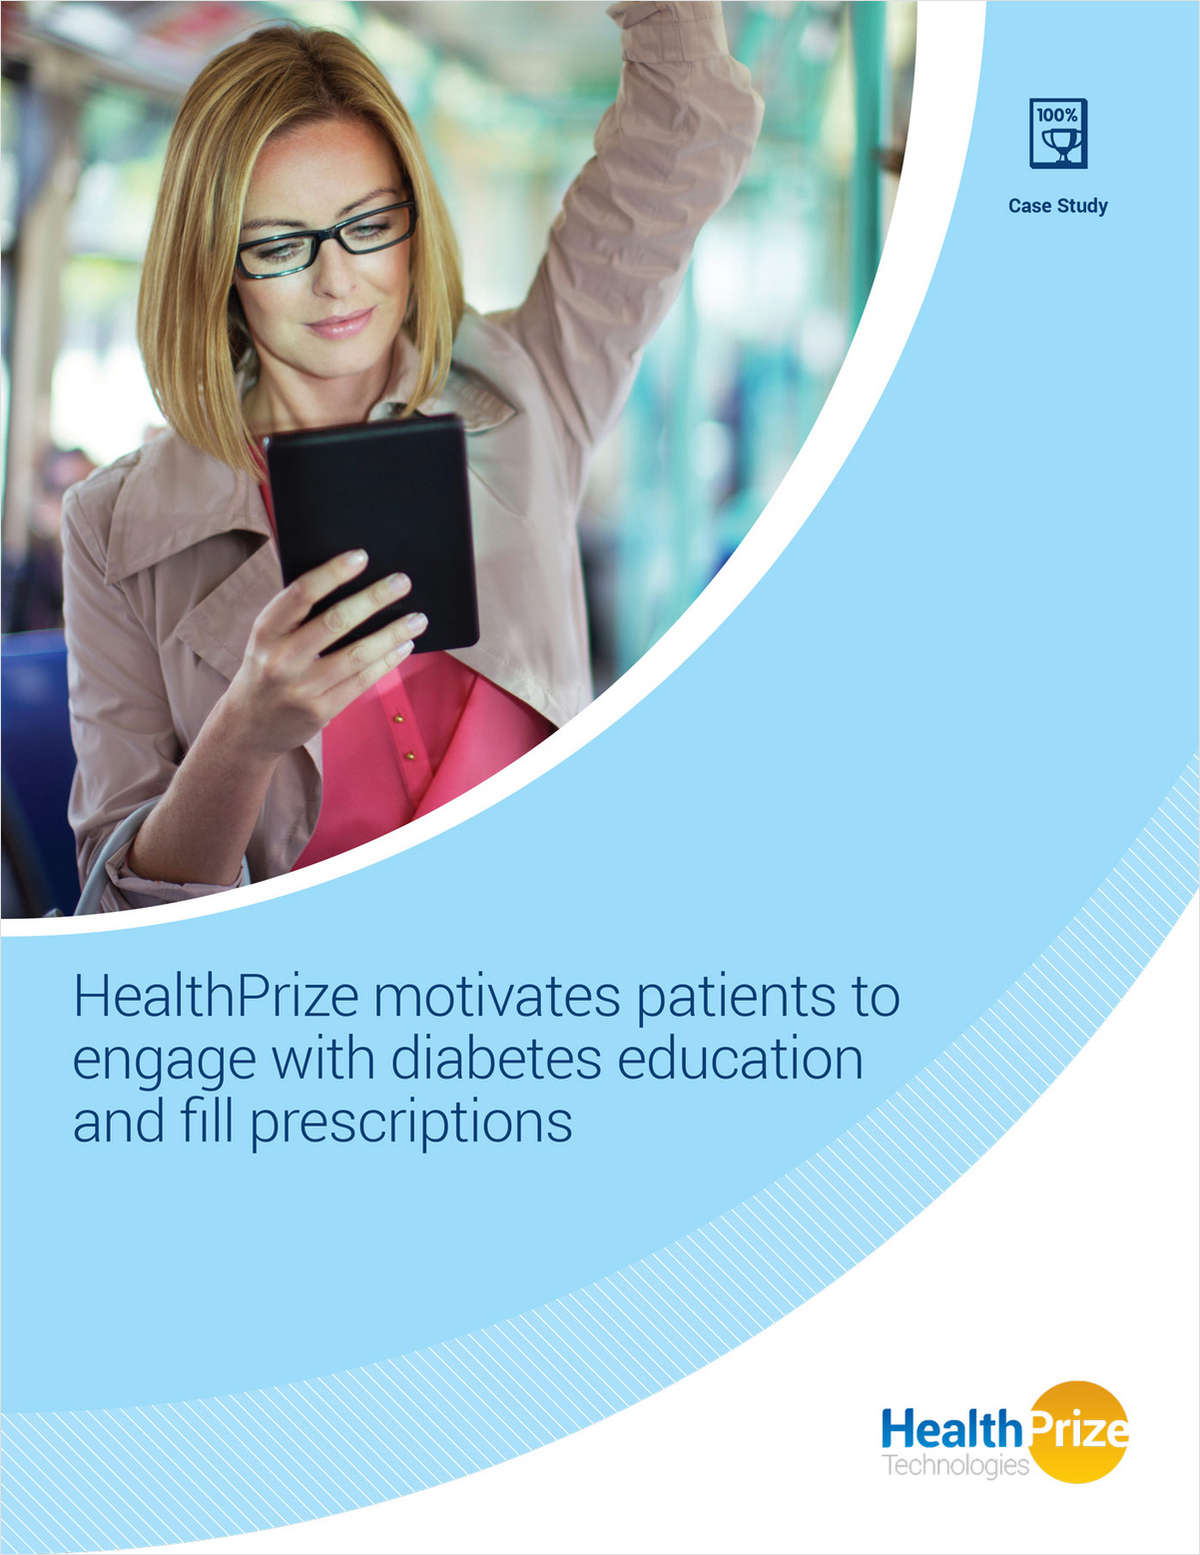 Motivating Patients to Engage with Diabetes Education and Fill Prescriptions